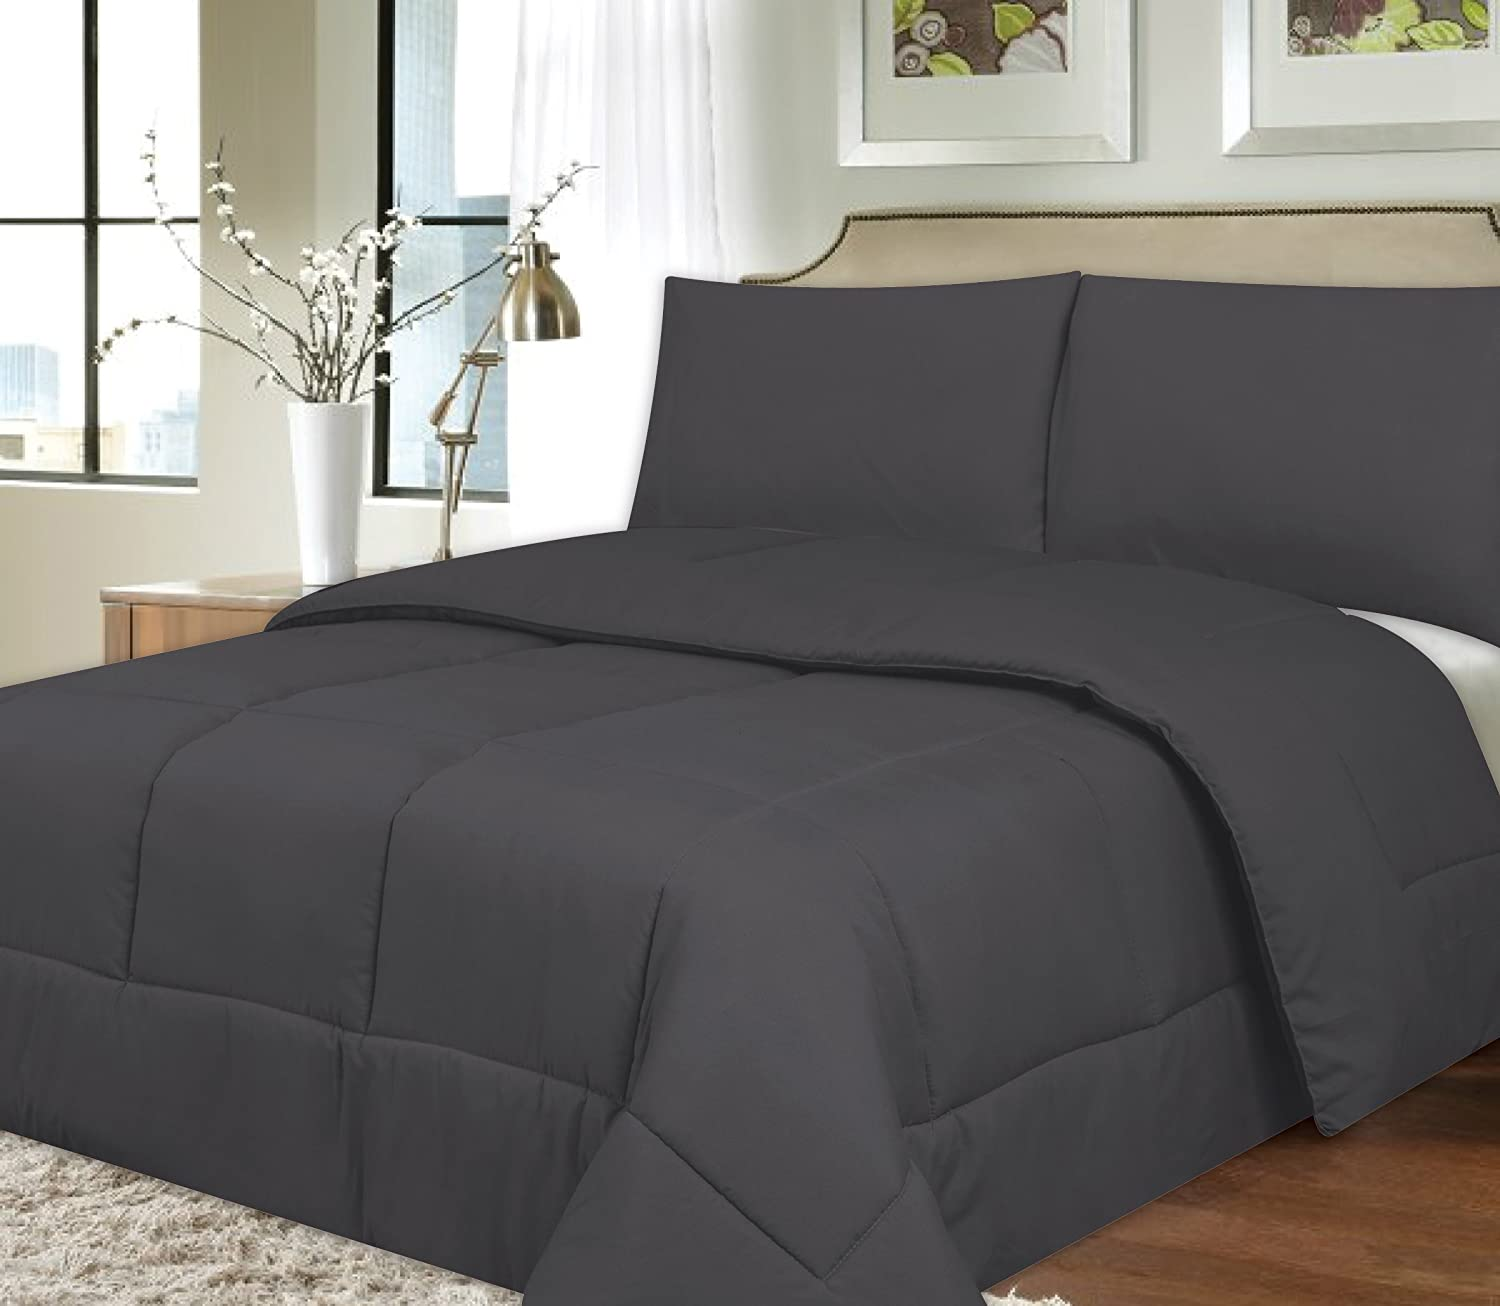 king grey white and gray full set dark comforter bedding bed blue pattern light queen size bedspread